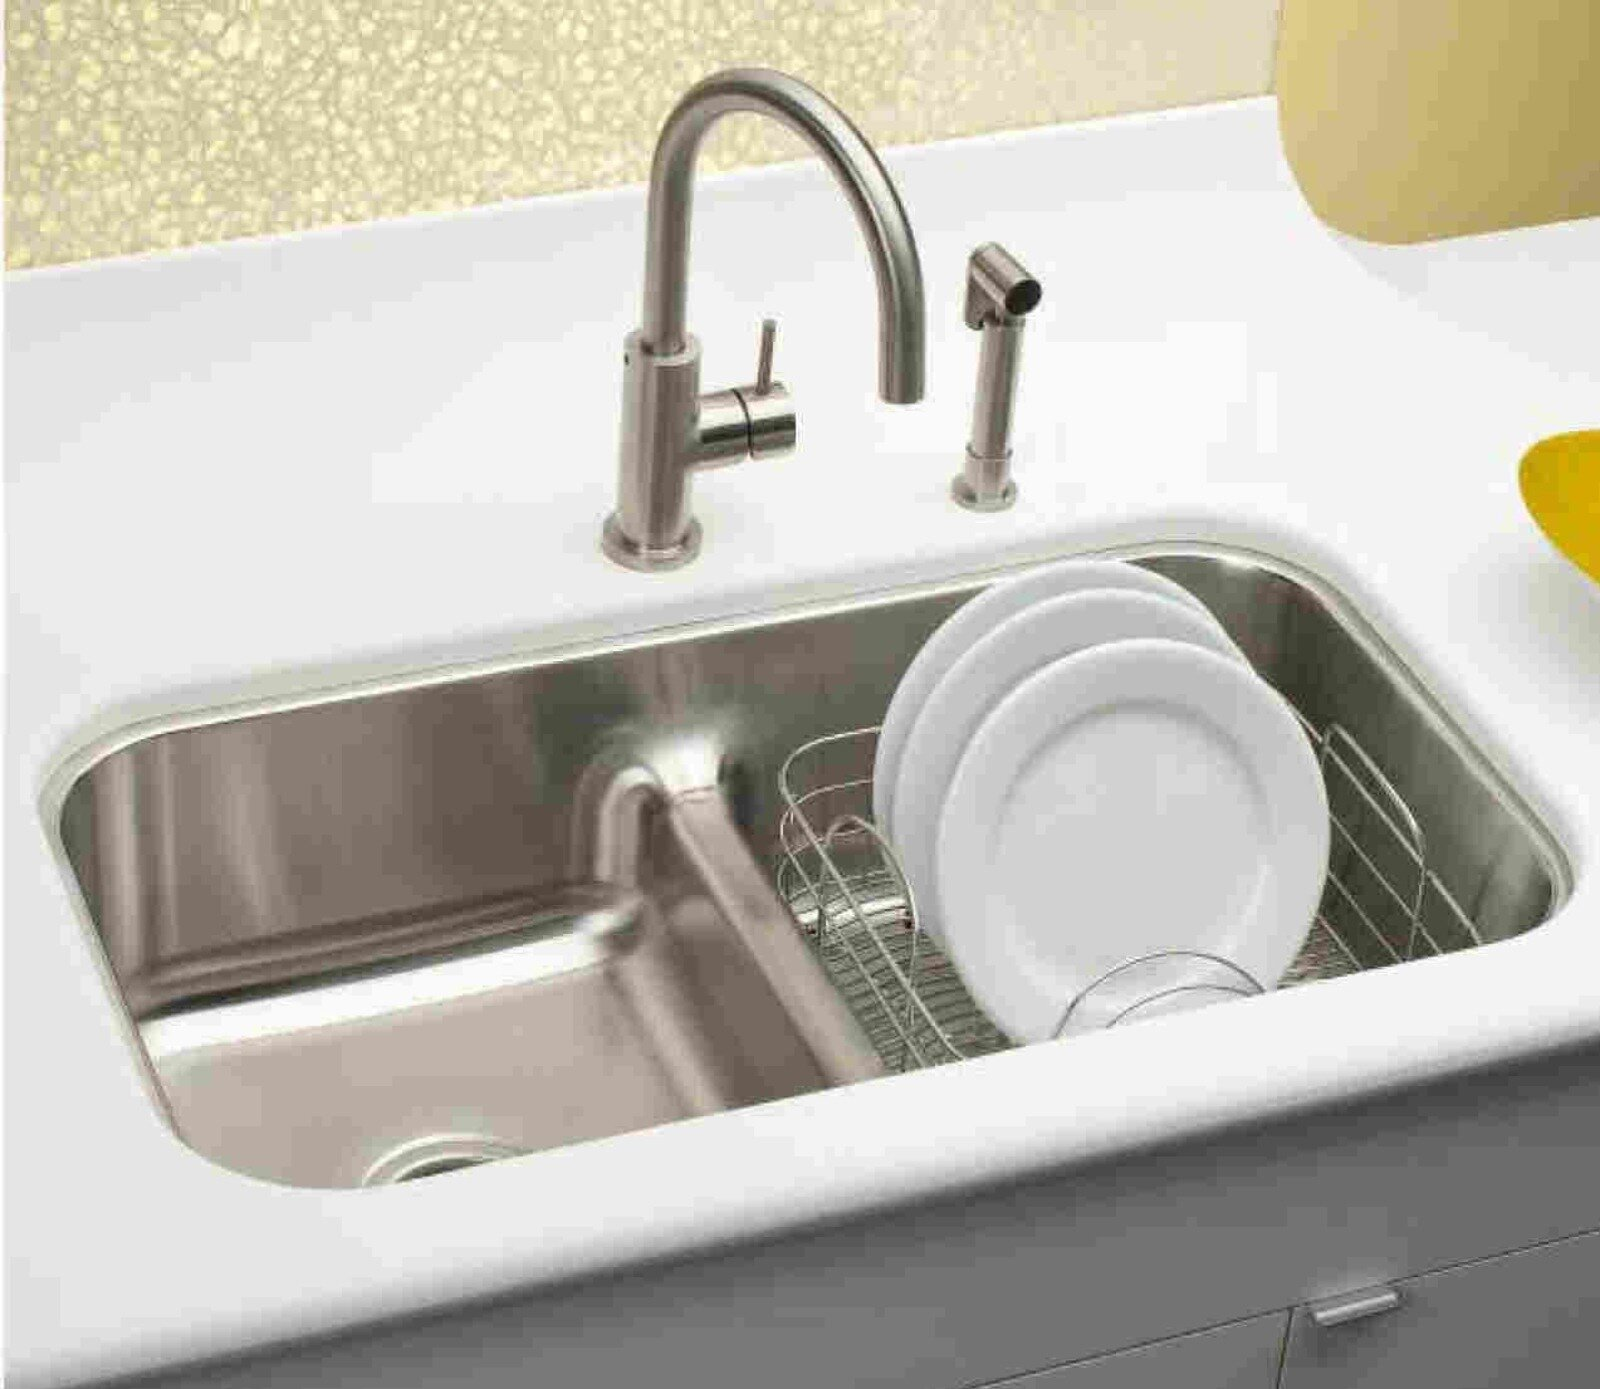 Cozy Kitchen Sinks Stainless Steel for Traditional Kitchen Design: Stainless Steel Kitchen Sink Unit | Kitchen Sinks Stainless Steel | Farmhouse Stainless Steel Kitchen Sink